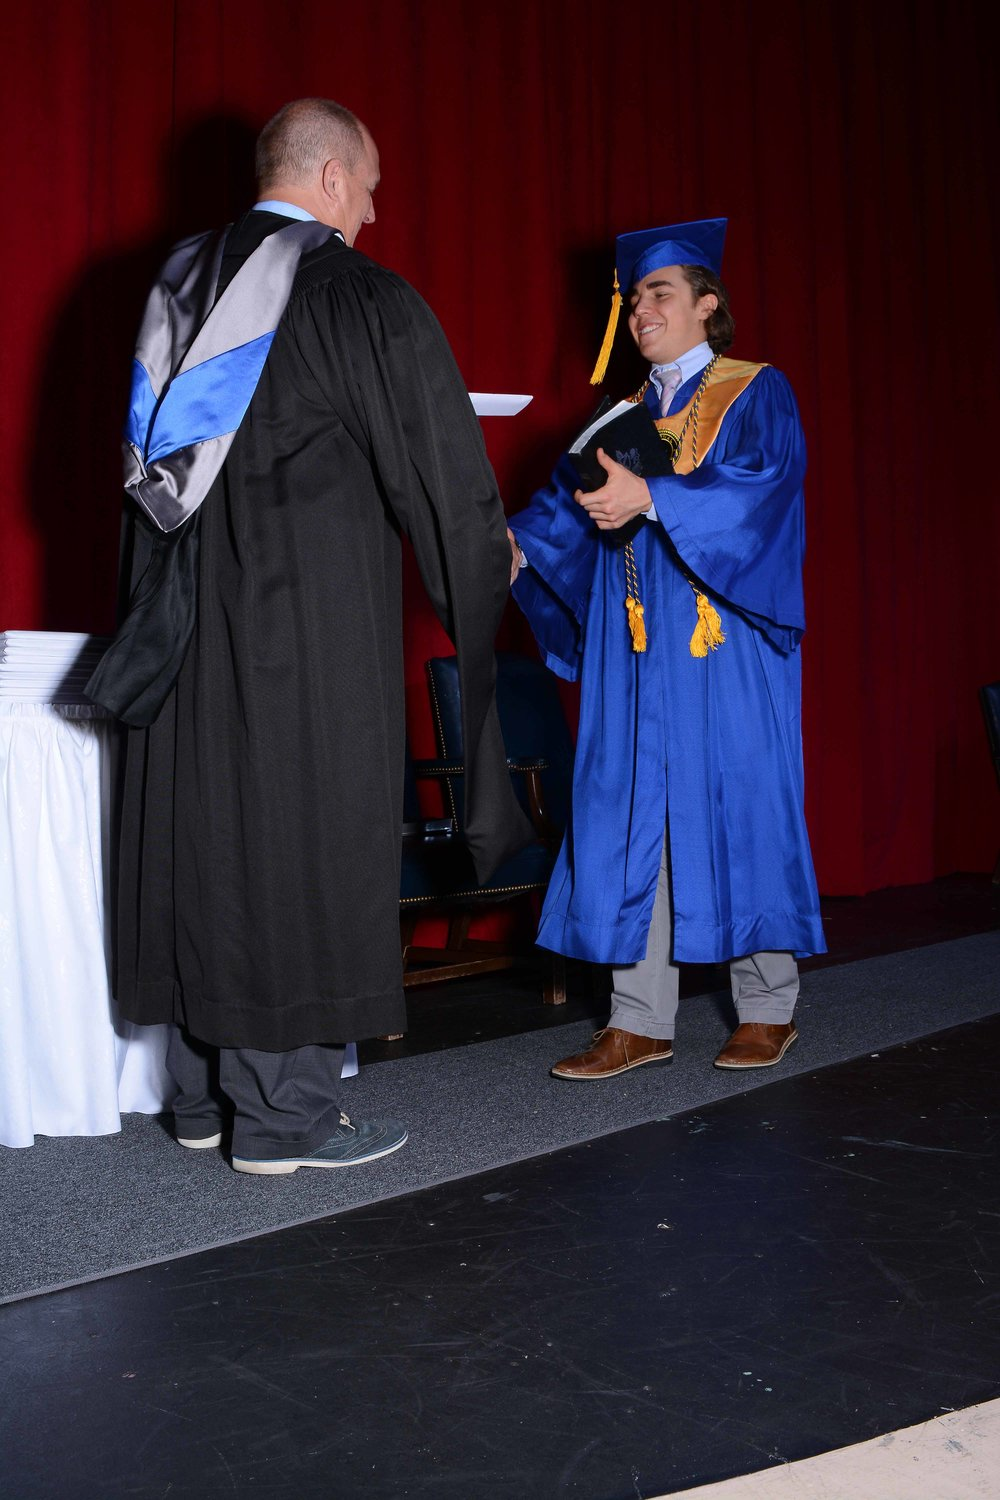 May14 Commencement61.jpg